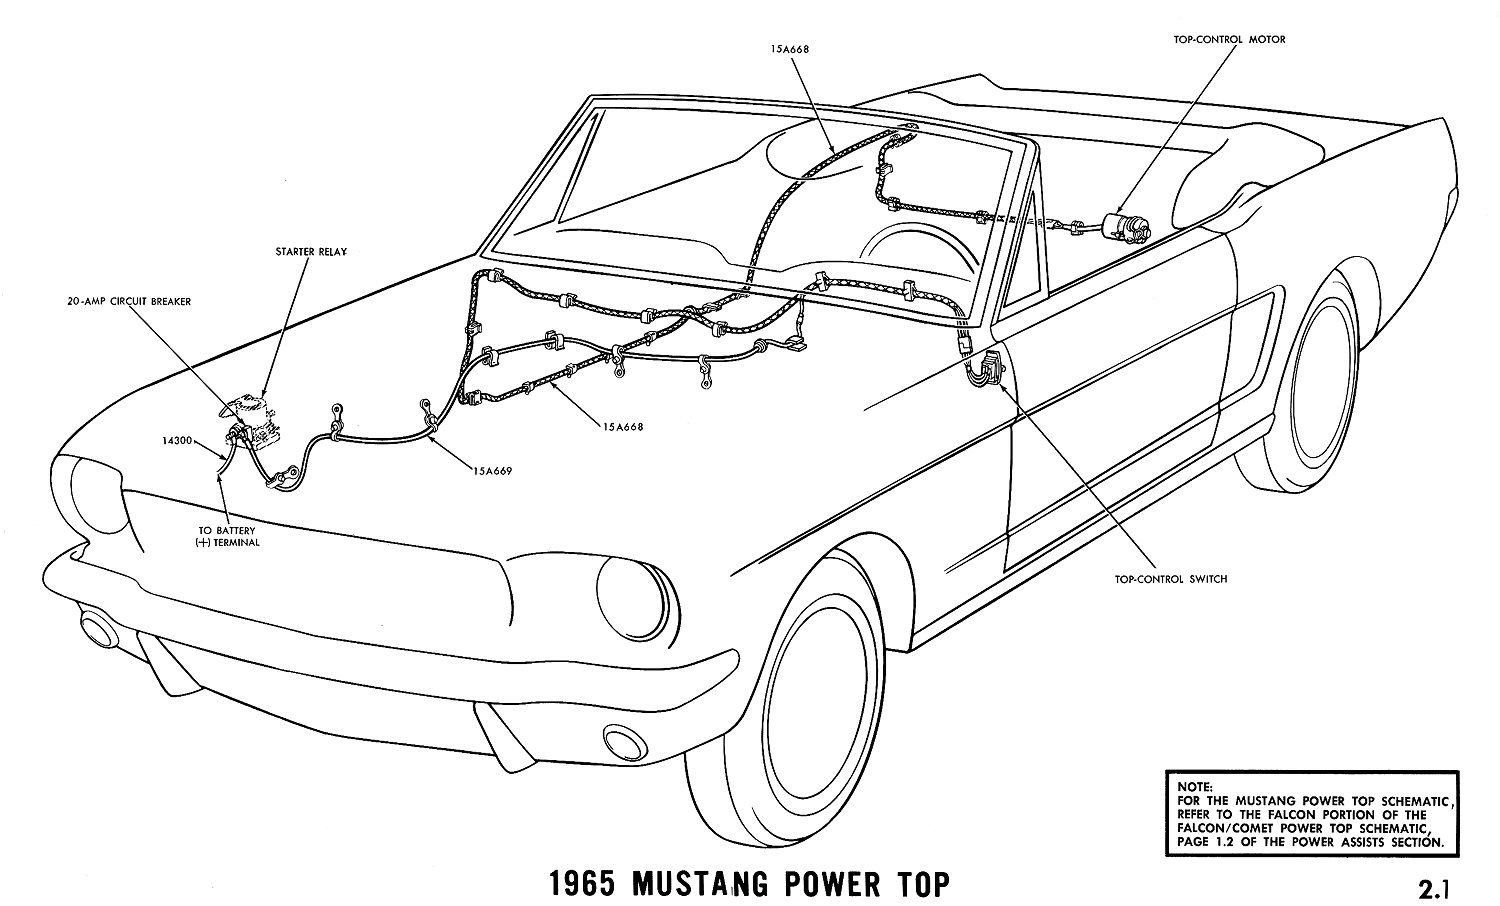 Mustang Wiring Harness 65 66 Library 69 Diagram 1965 Power Top